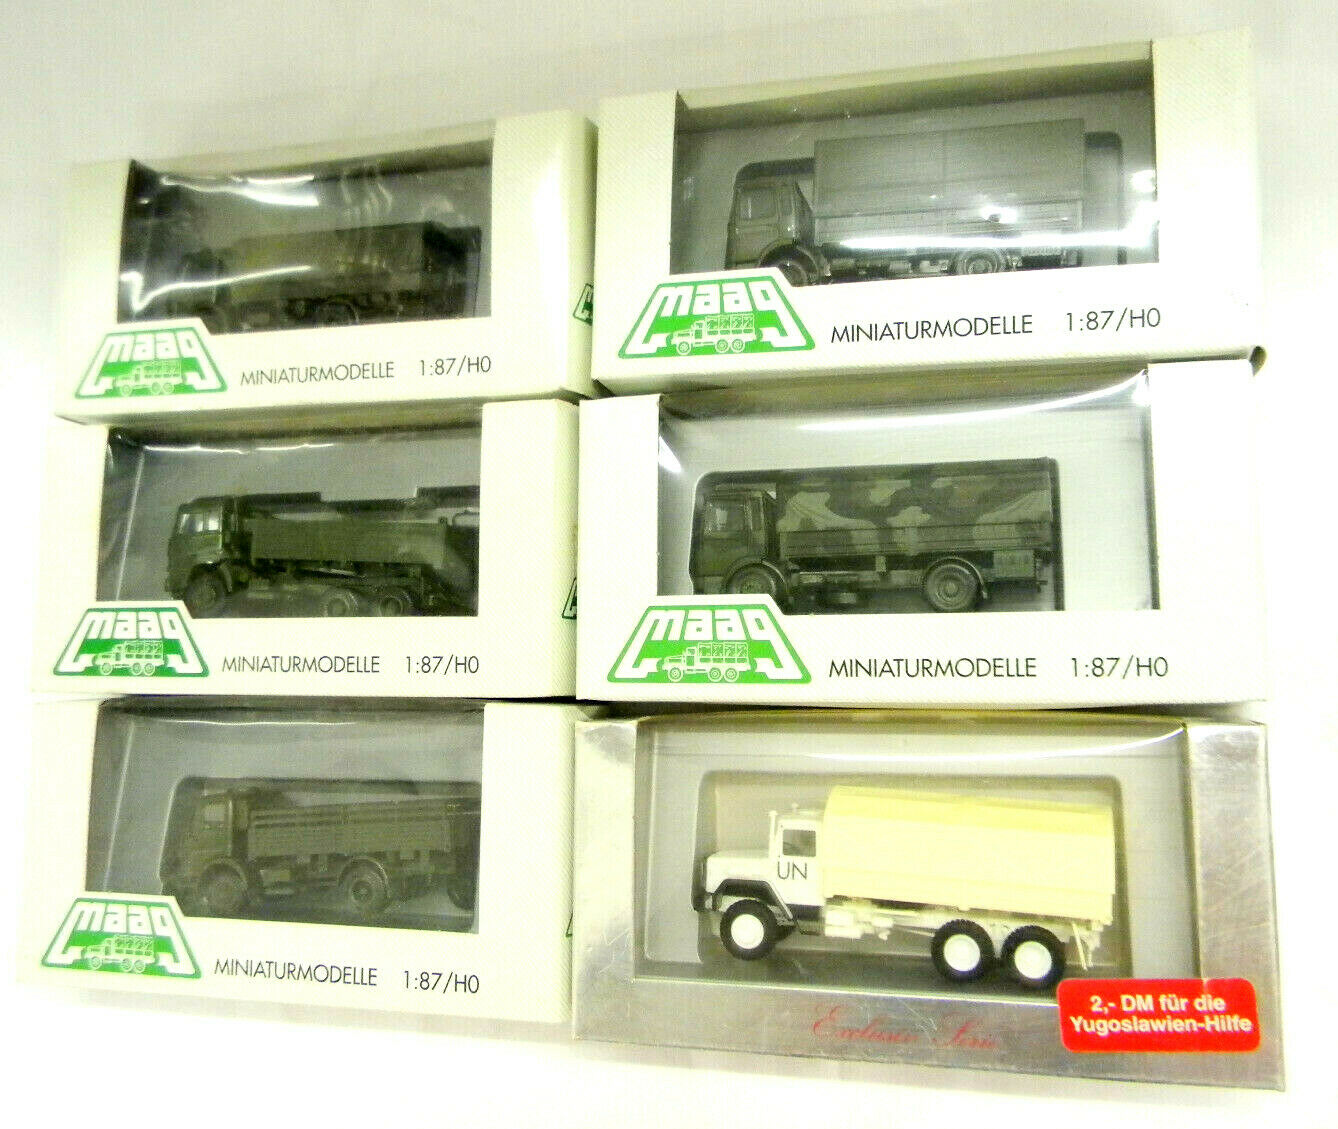 6x Herpa Maag 7400 Mercedes MB ejército alemán BW militar guardia fronteriza onu camiones 1 87 h0